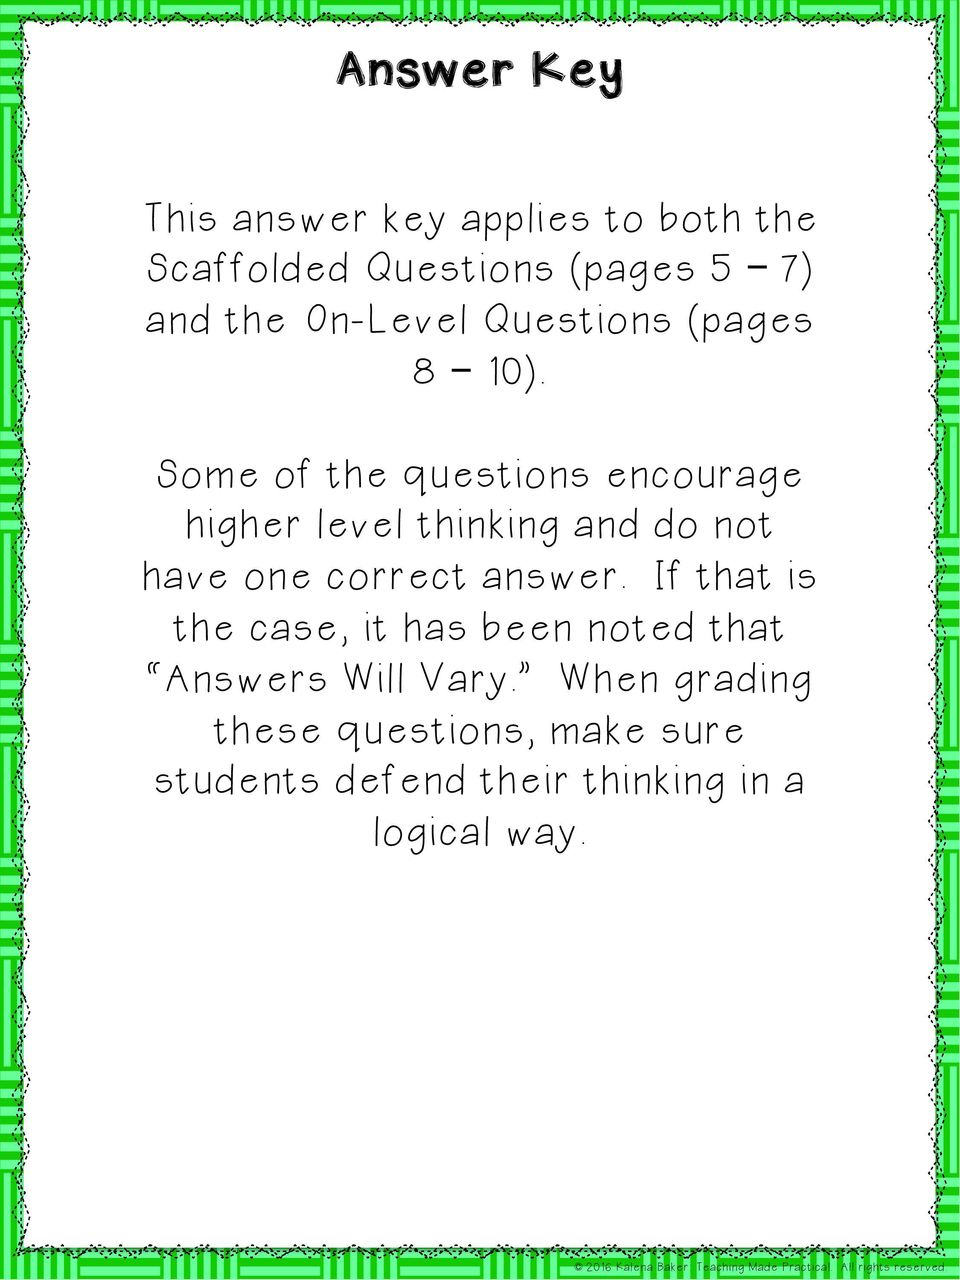 Some of the questions encourage higher level thinking and do not have one correct answer.